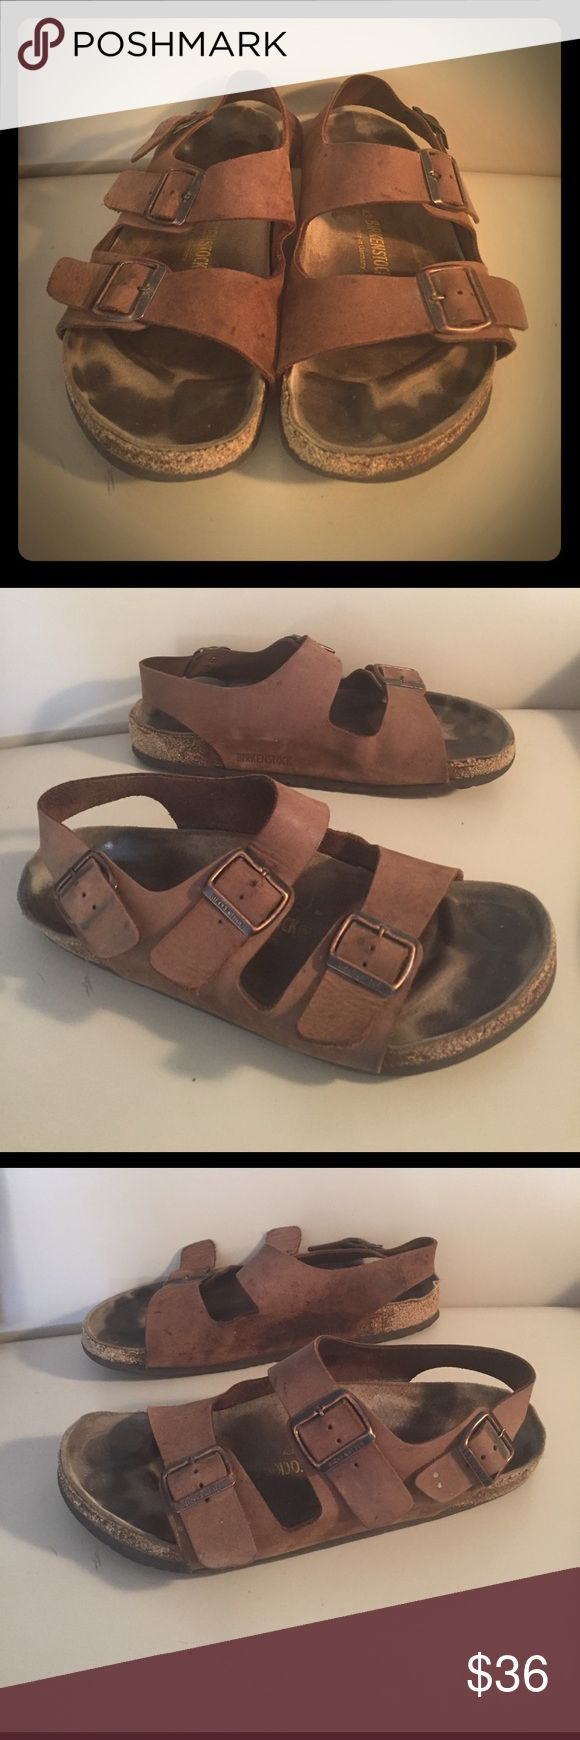 Men's 10 Birkenstock Sandals Brown Men's Birkenstock sandals size 10. Good used condition, with some wear on the backs of the heels and toes, please see pictures. Lots of life left! Birkenstock Shoes Sandals & Flip-Flops